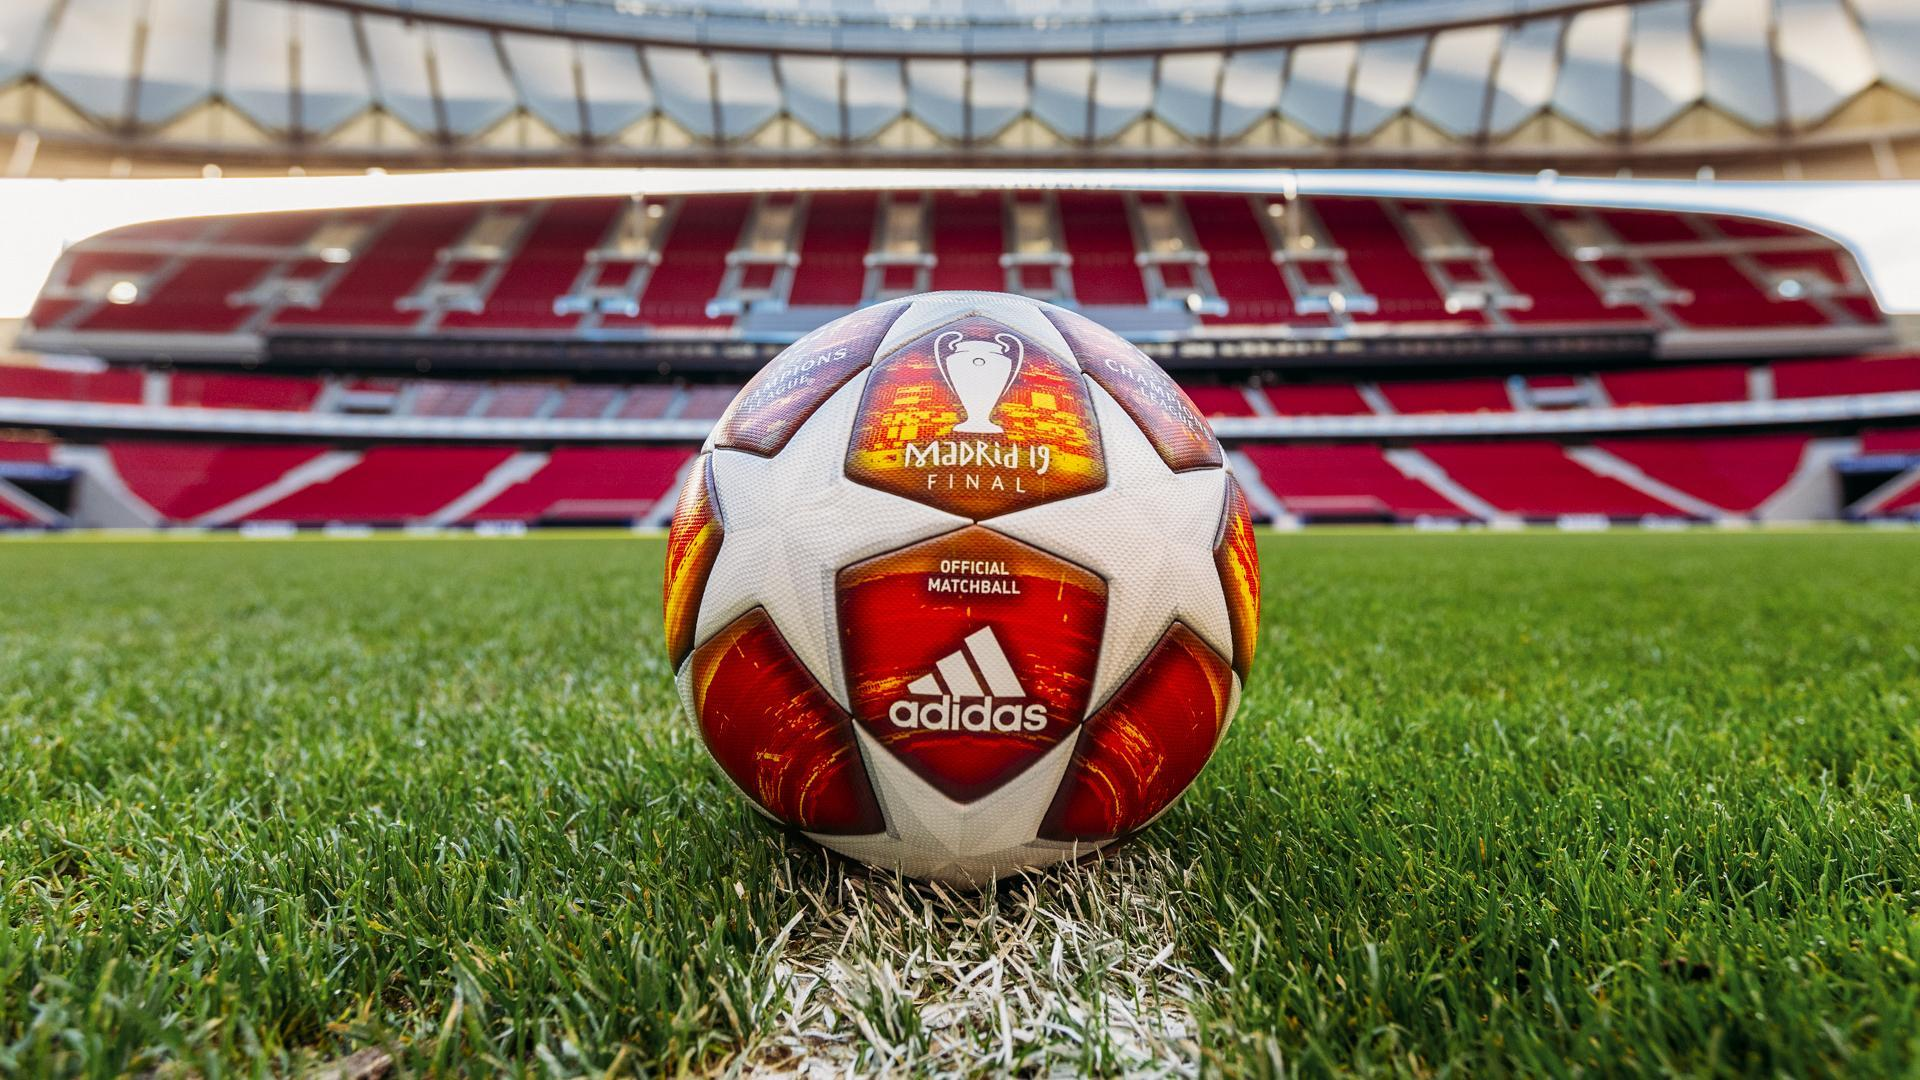 The ball for the Champions League final | MARCA in English